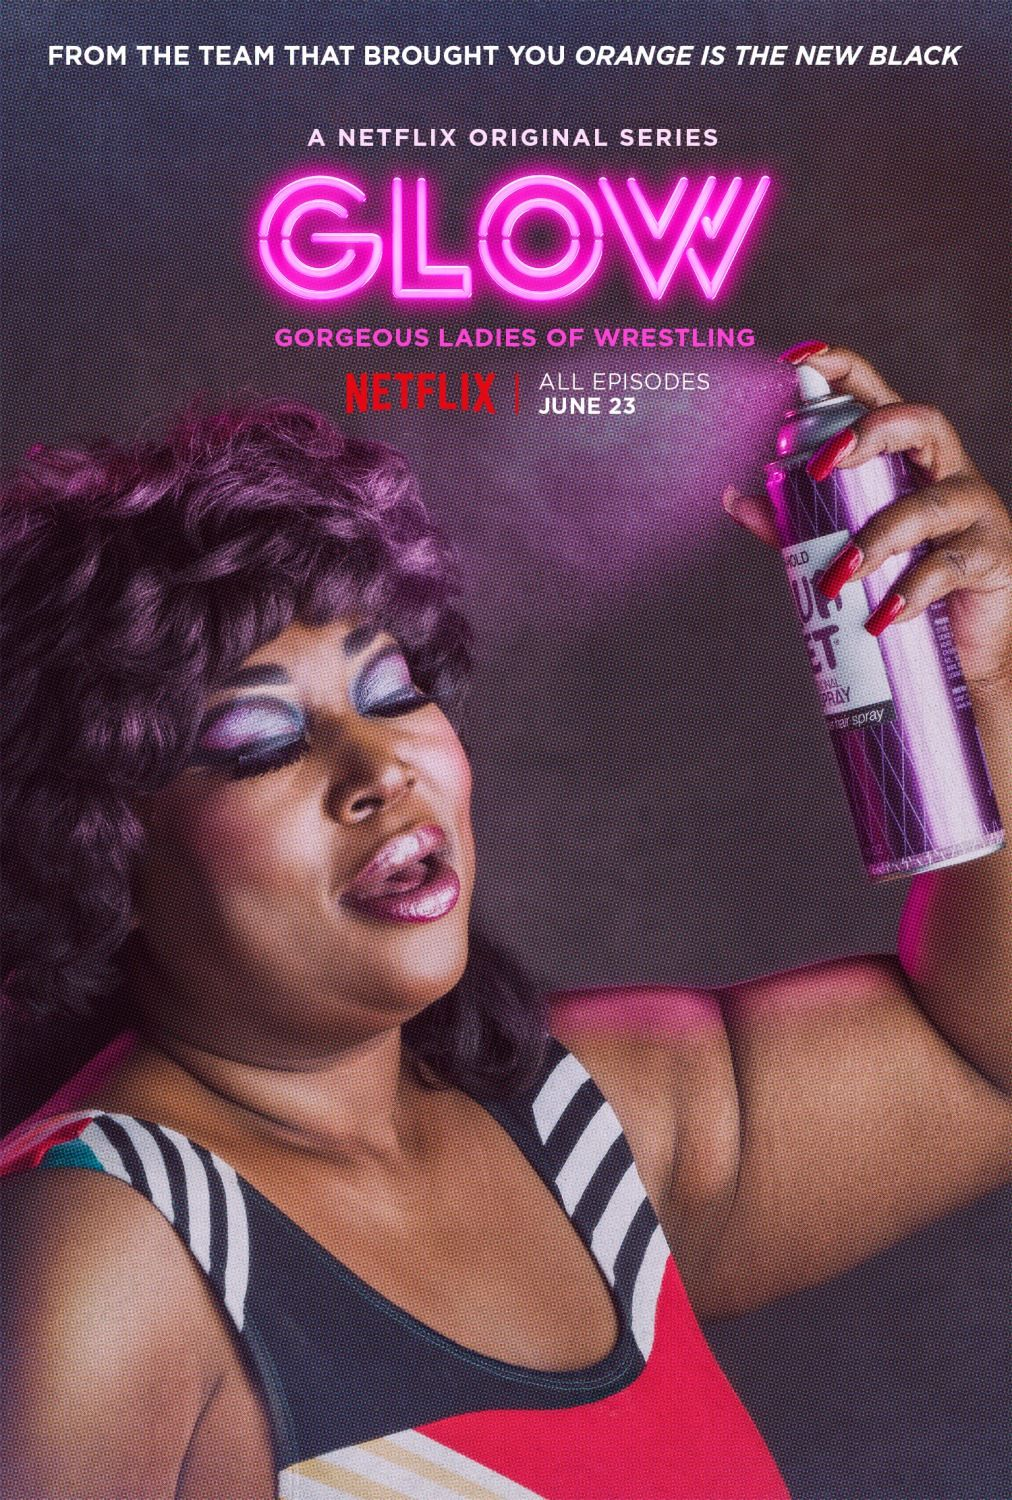 Glow series trailers featurette images and posters